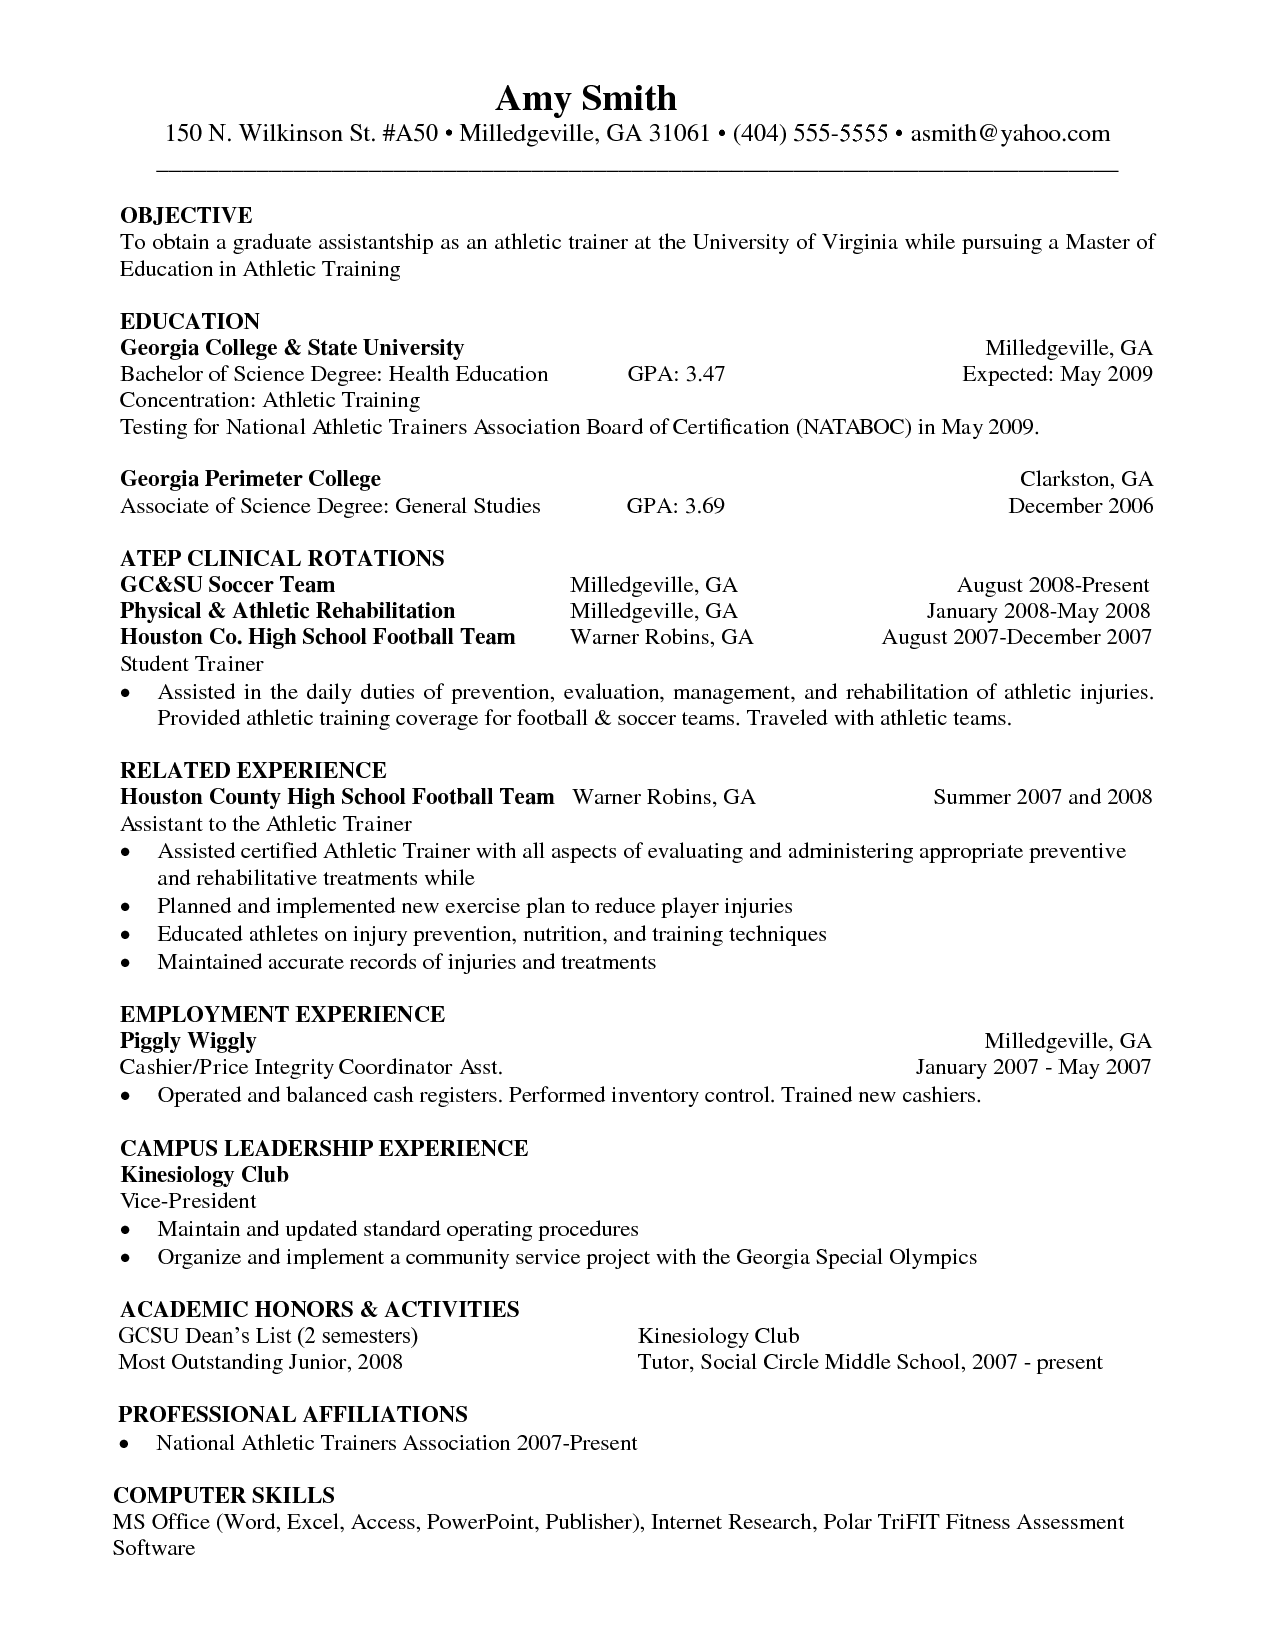 Education On Resume Examples Volleyball Resume Cover Letter Athletic Trainer Sample Sports